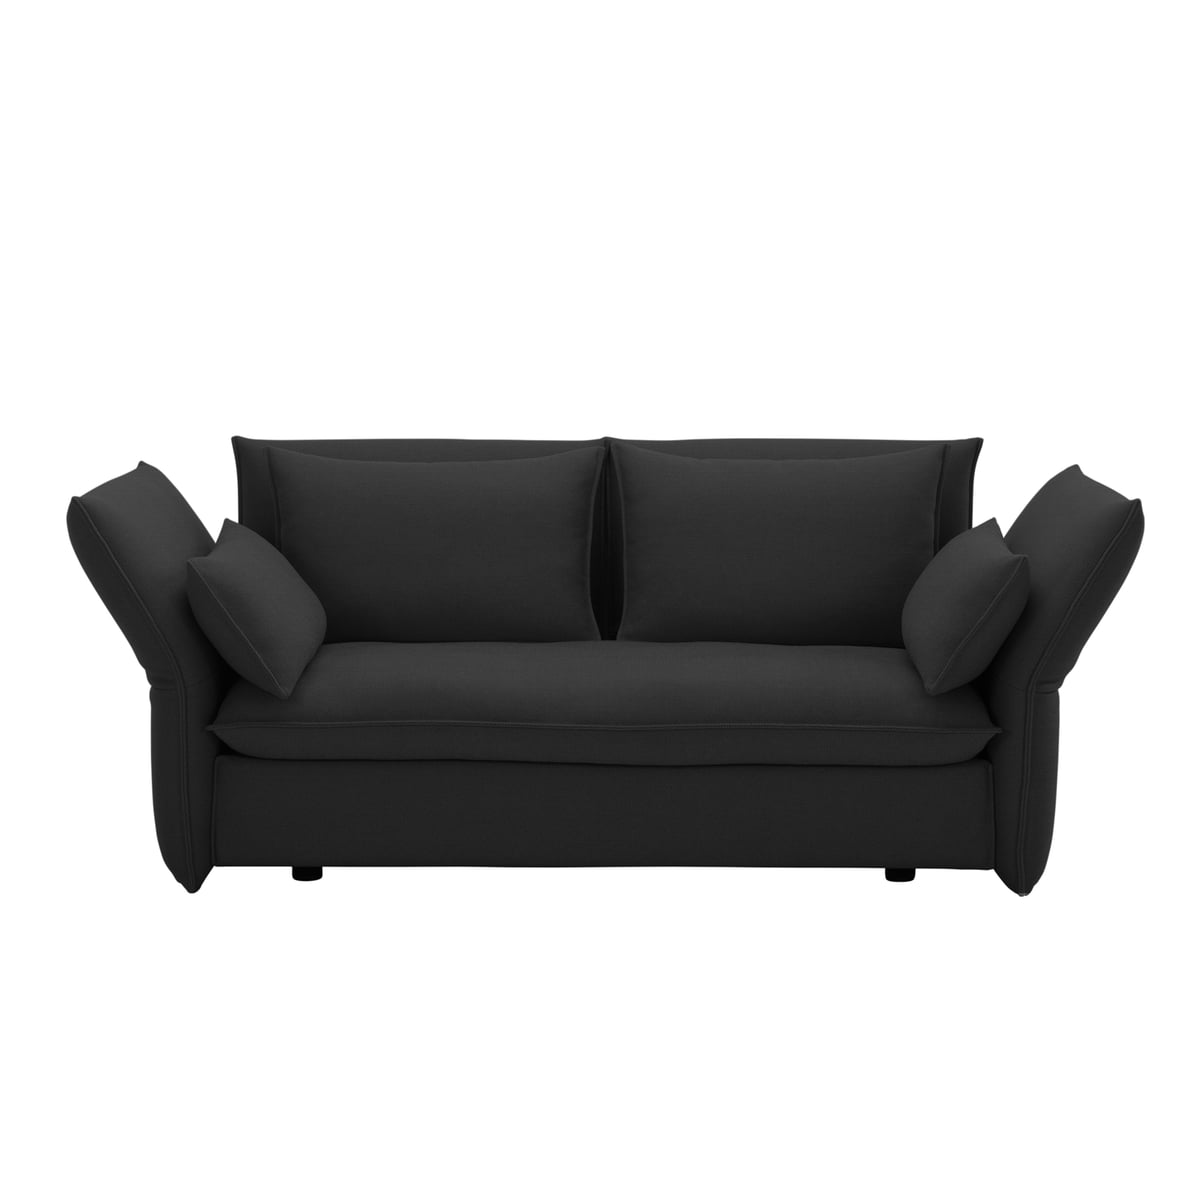 mariposa sofa 2 5 sitzer von vitra bei. Black Bedroom Furniture Sets. Home Design Ideas